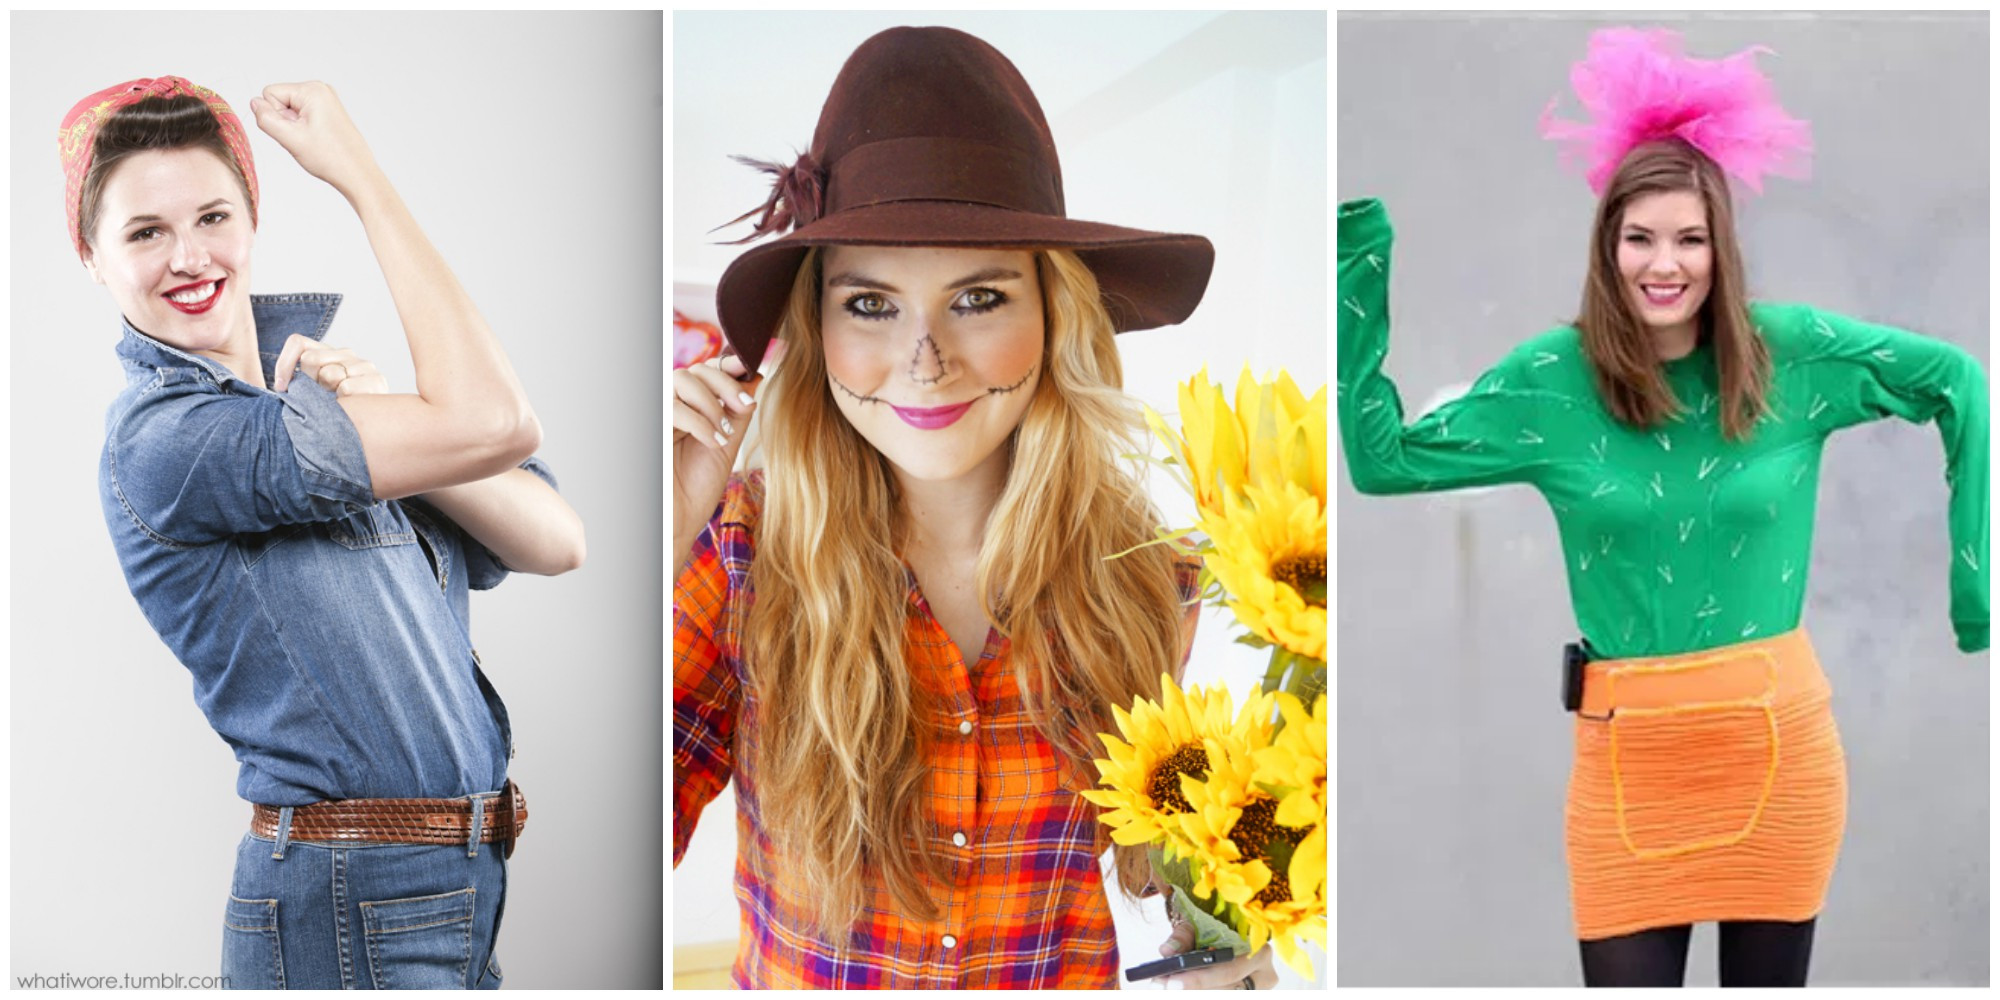 Last Minute DIY Halloween Costumes For Adults  21 DIY Halloween Costumes for Women Easy Last Minute